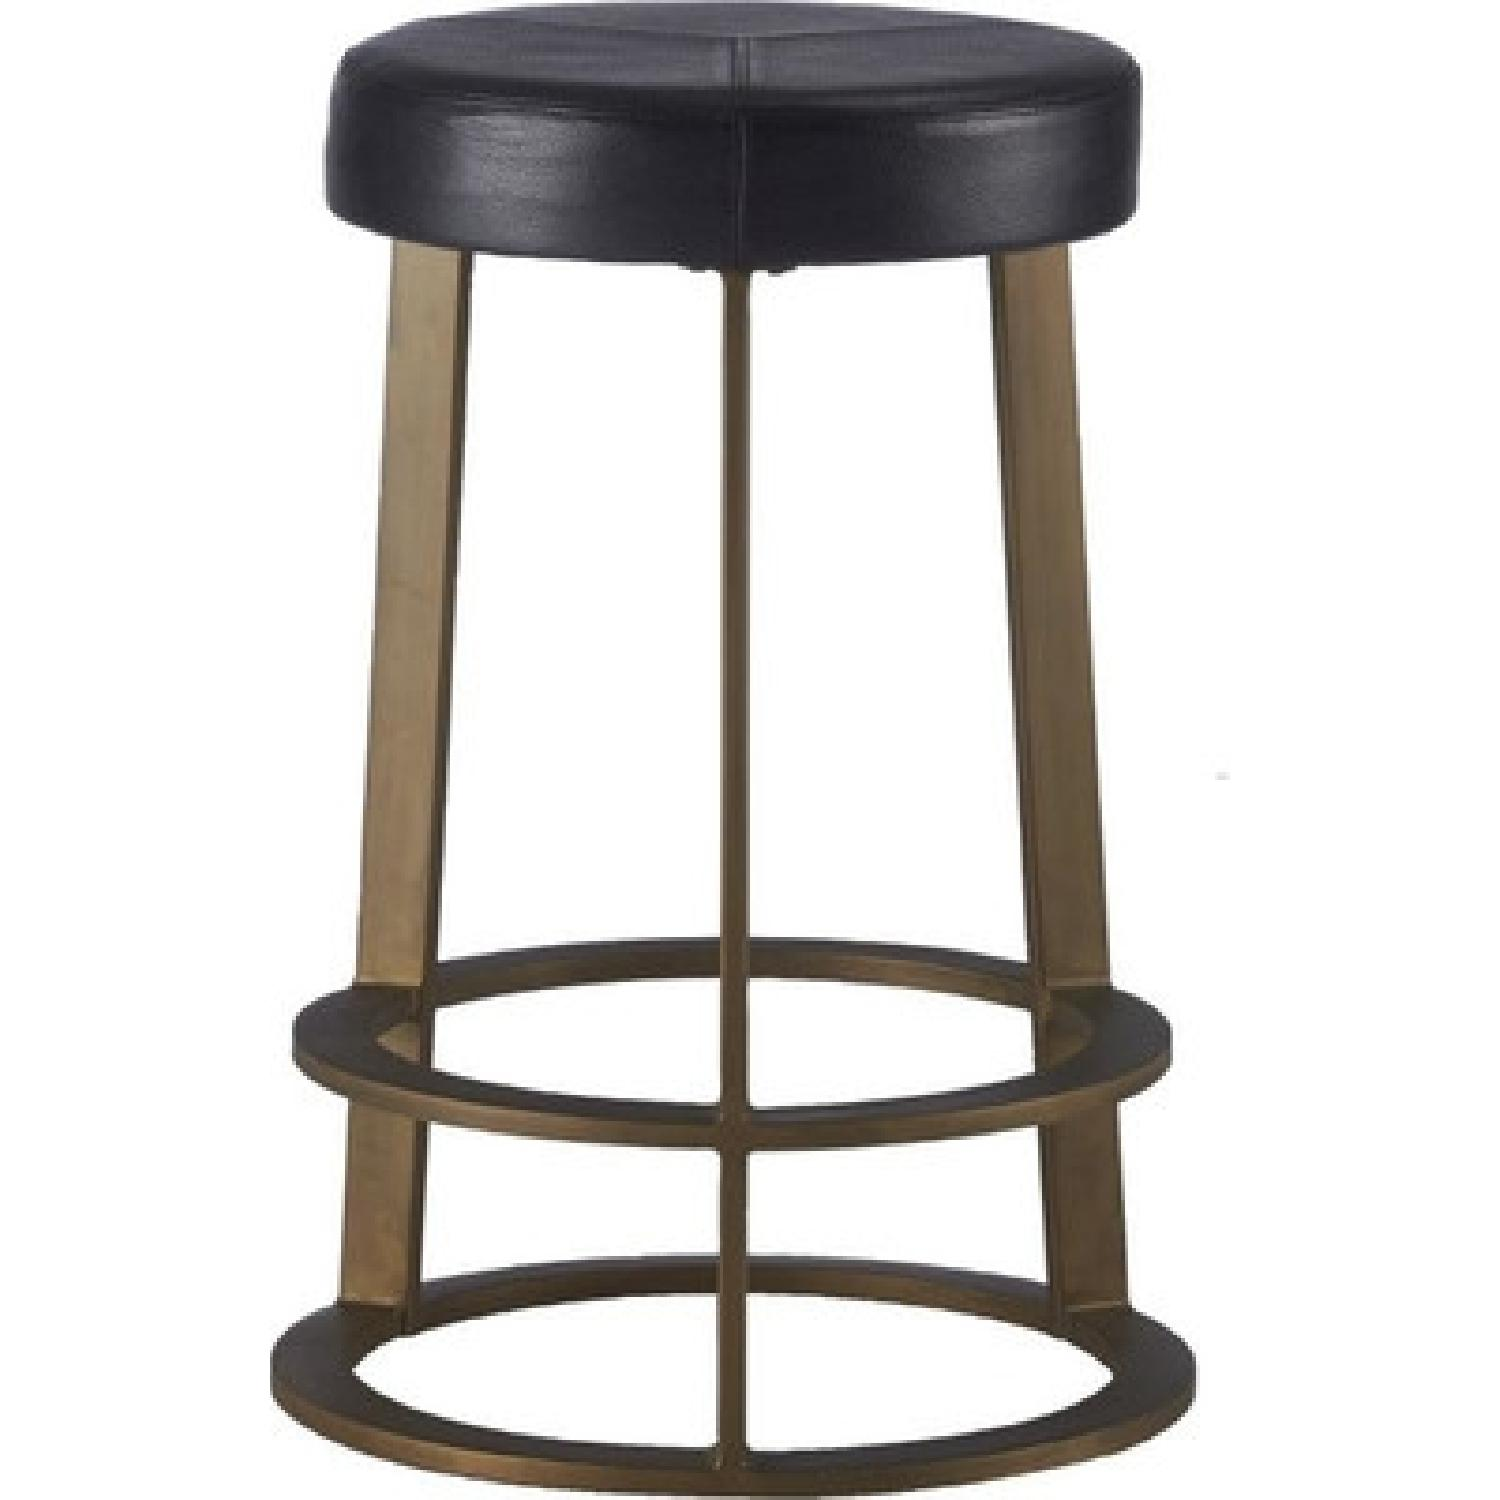 CB2 Leather Reverb Stools - image-0